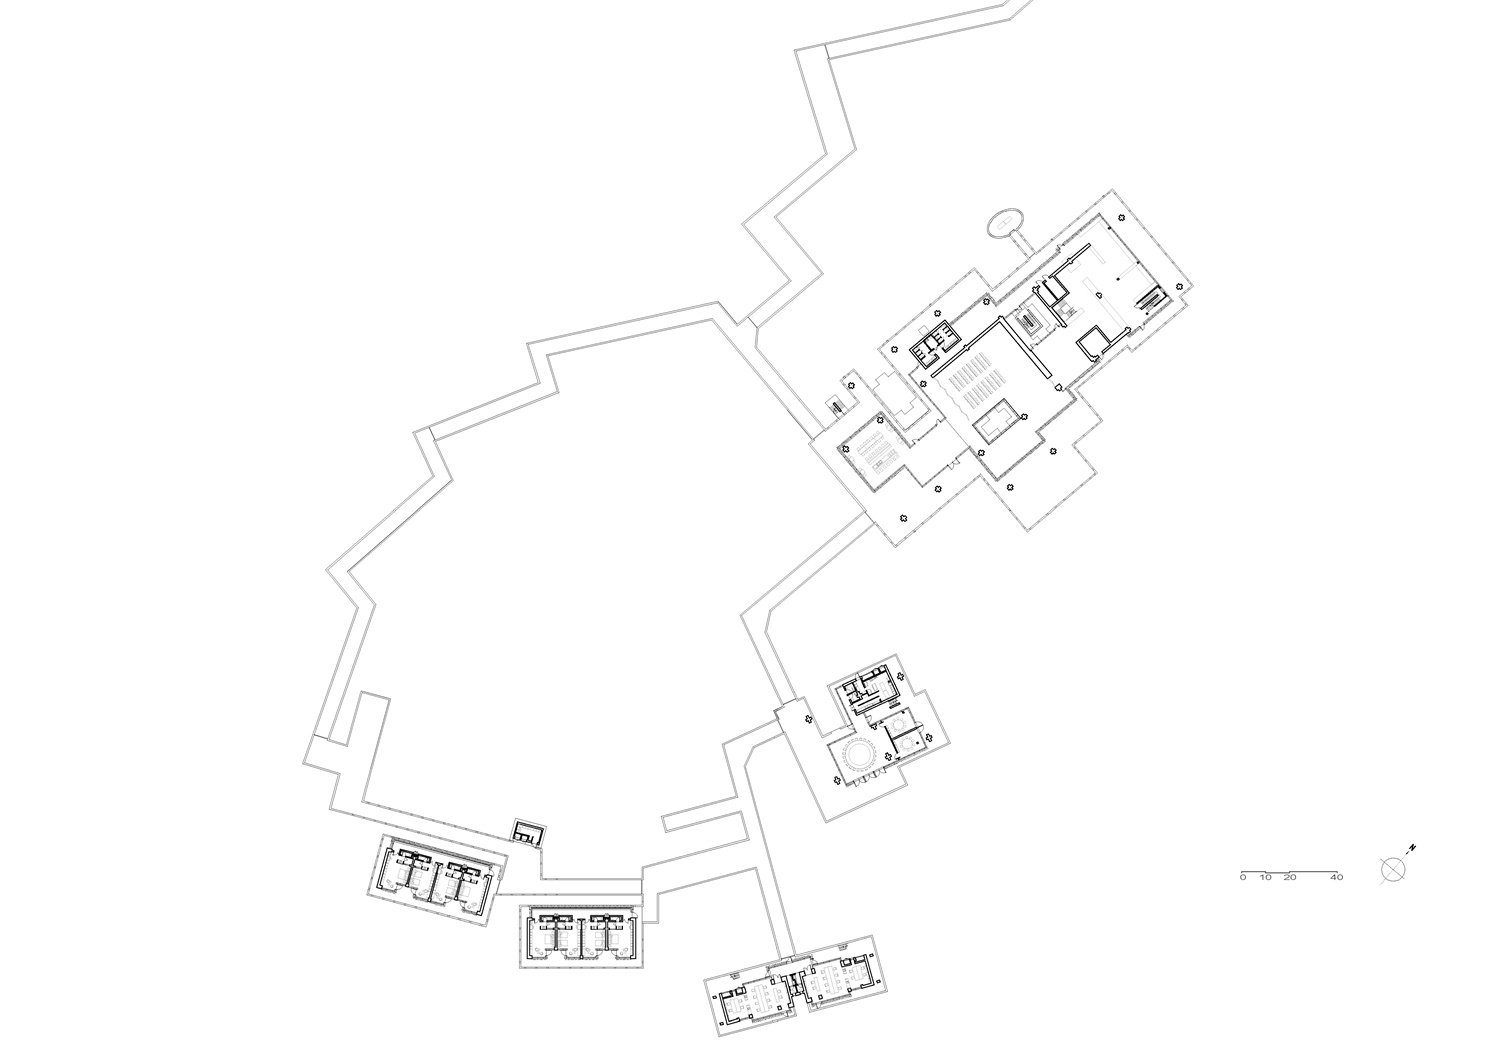 First Floor Plan of Wetland Research and Education Center Atelier Z+}